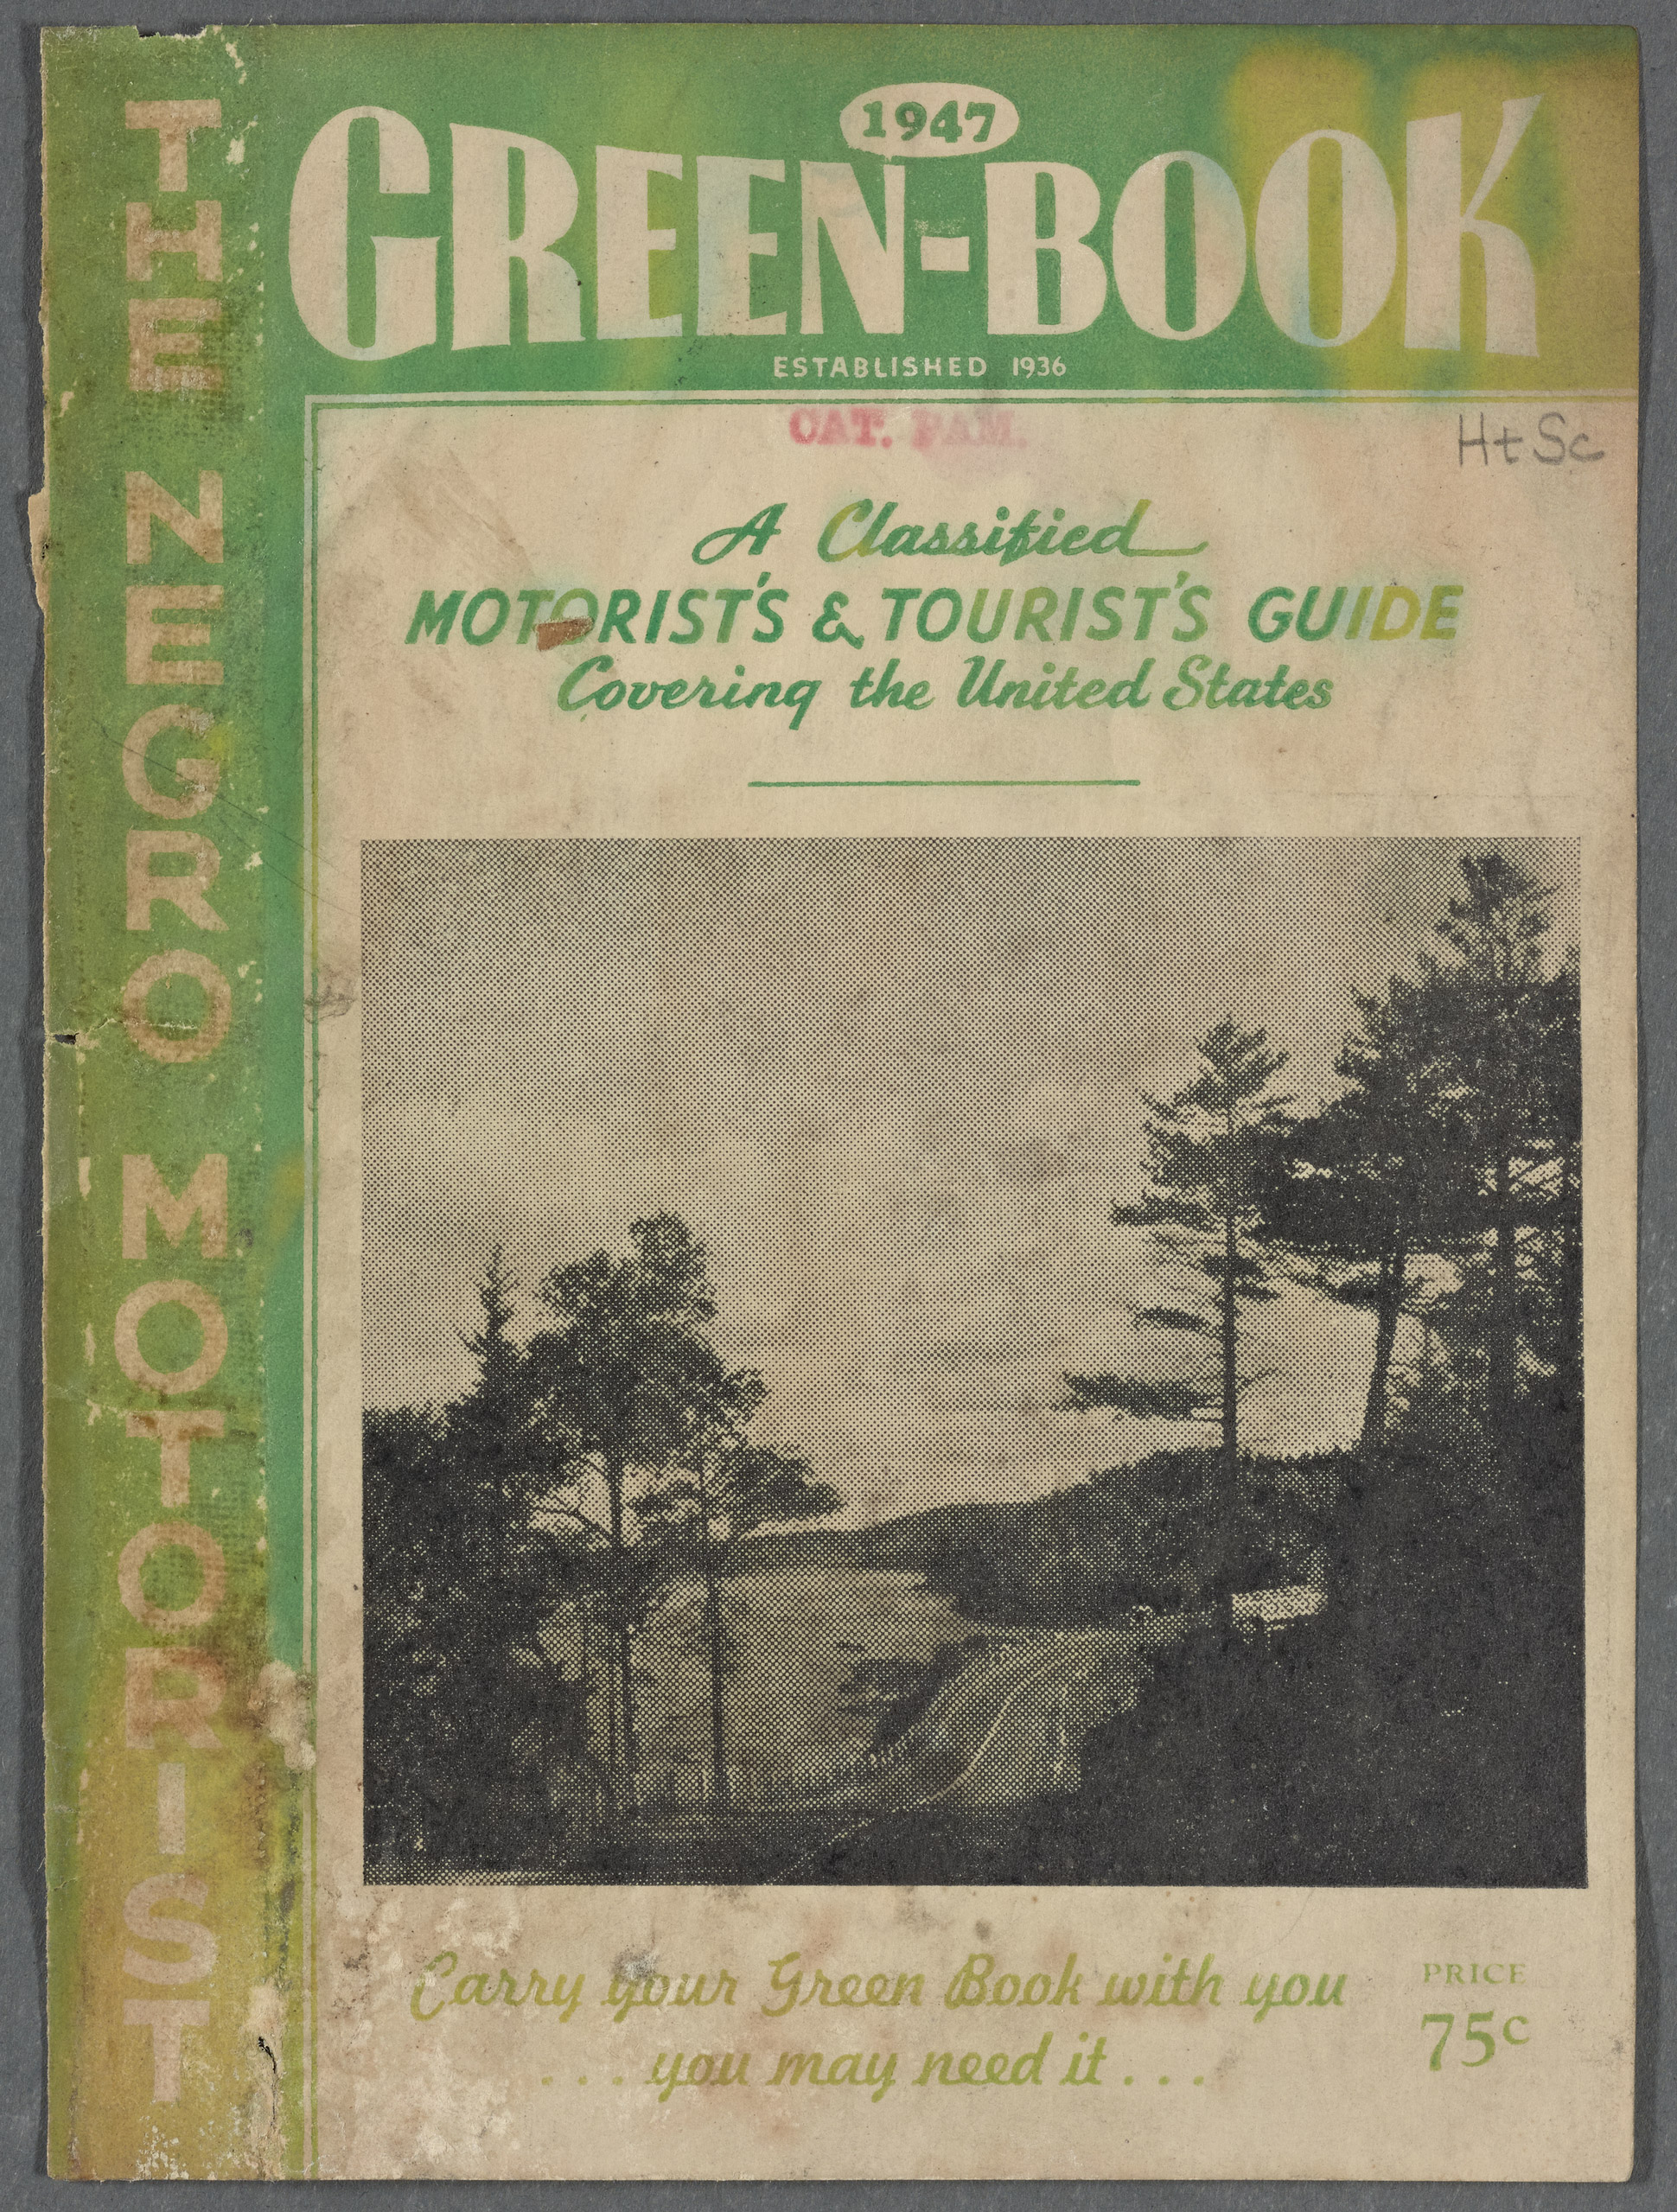 The Travelers' Green Book: 1947.